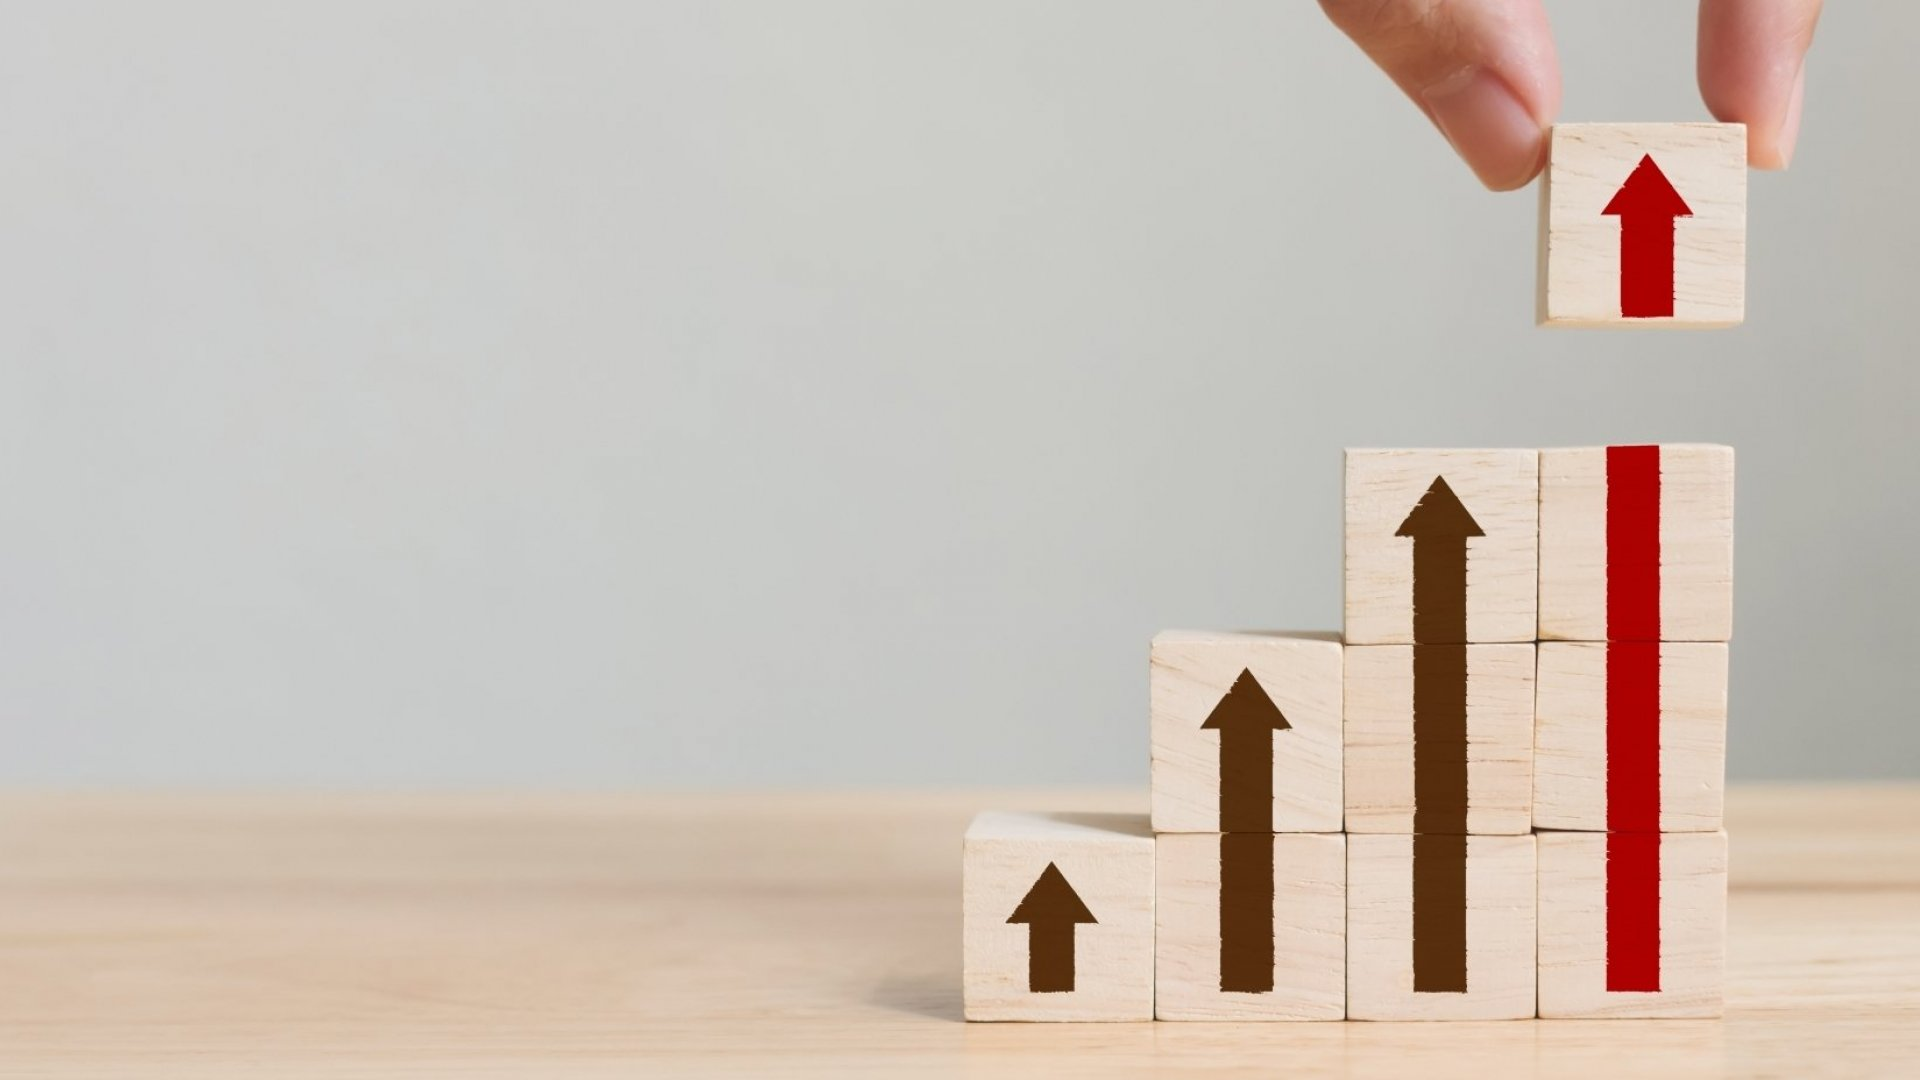 3 Shifts to Help You Sell More